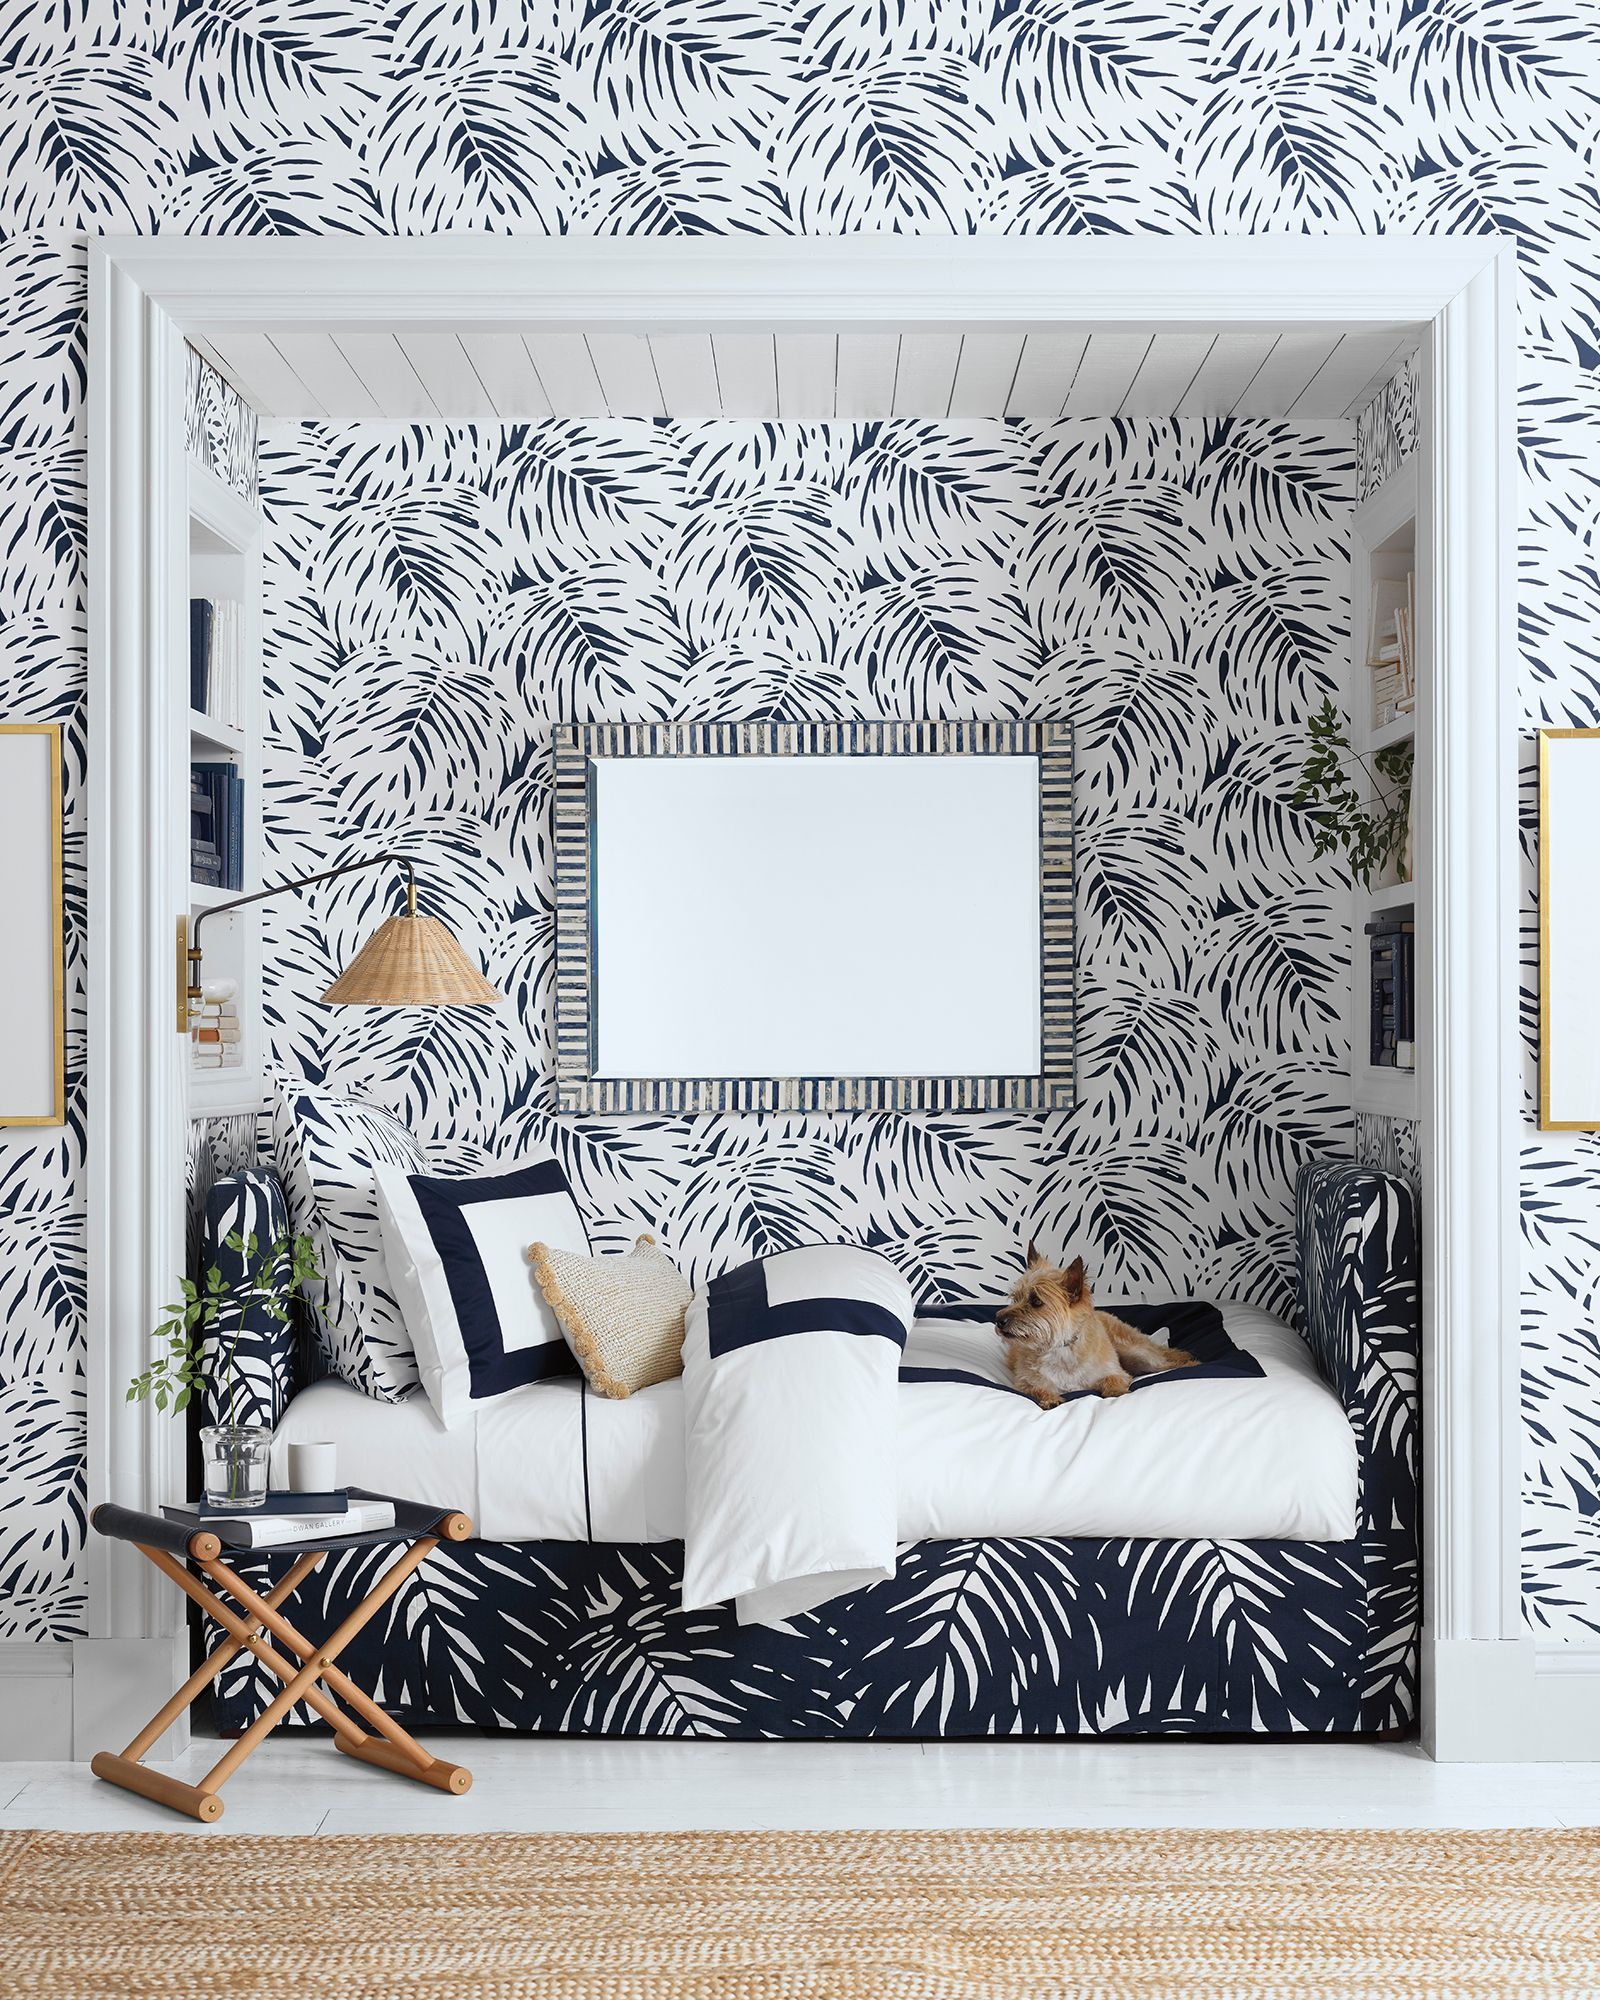 Patterned wallpaper is a fail-safe move | Source: serenanadlily.com